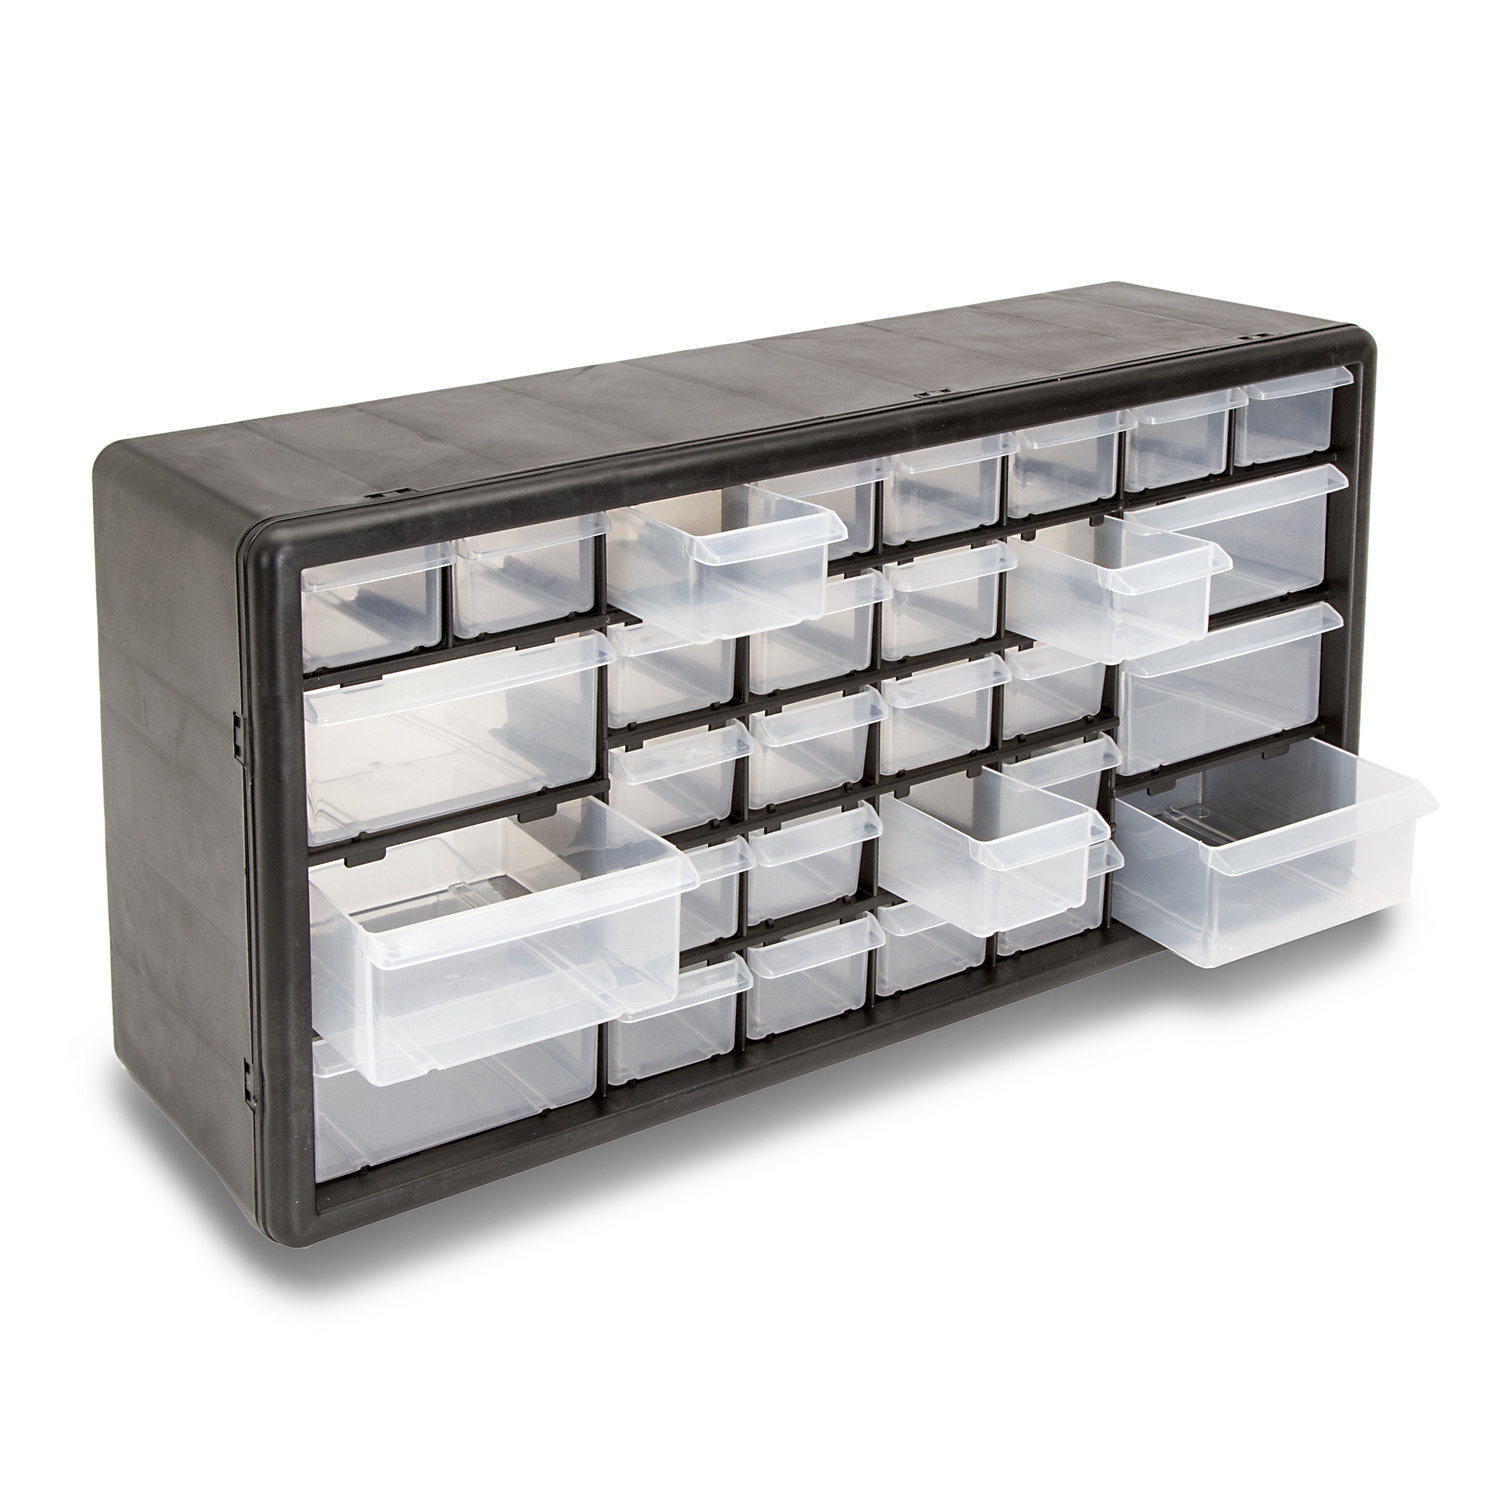 Darice Designer Storage 30 Drawer